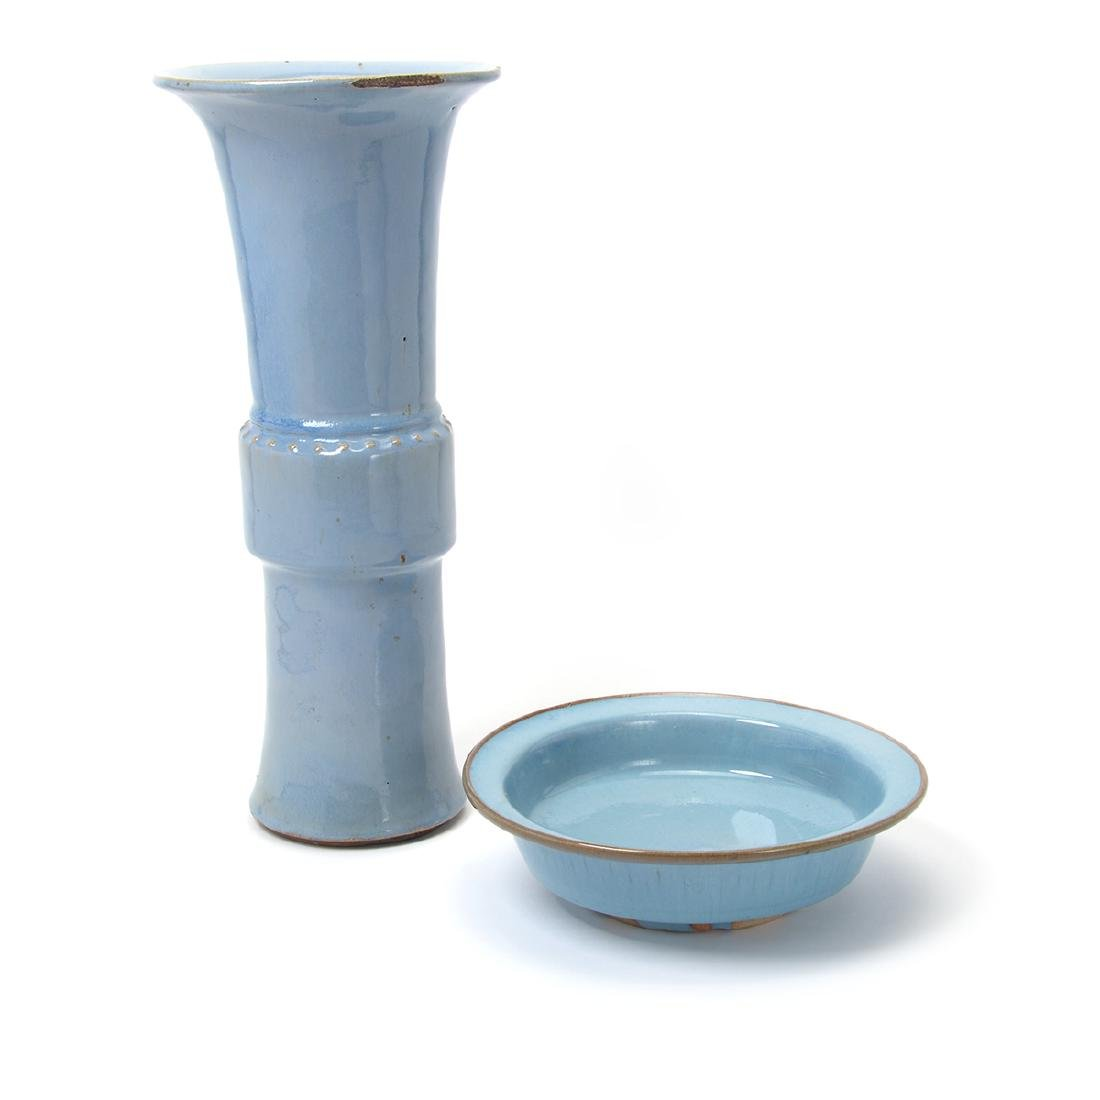 Two Sky Blue Glazed Stoneware Vessels, 19th Century